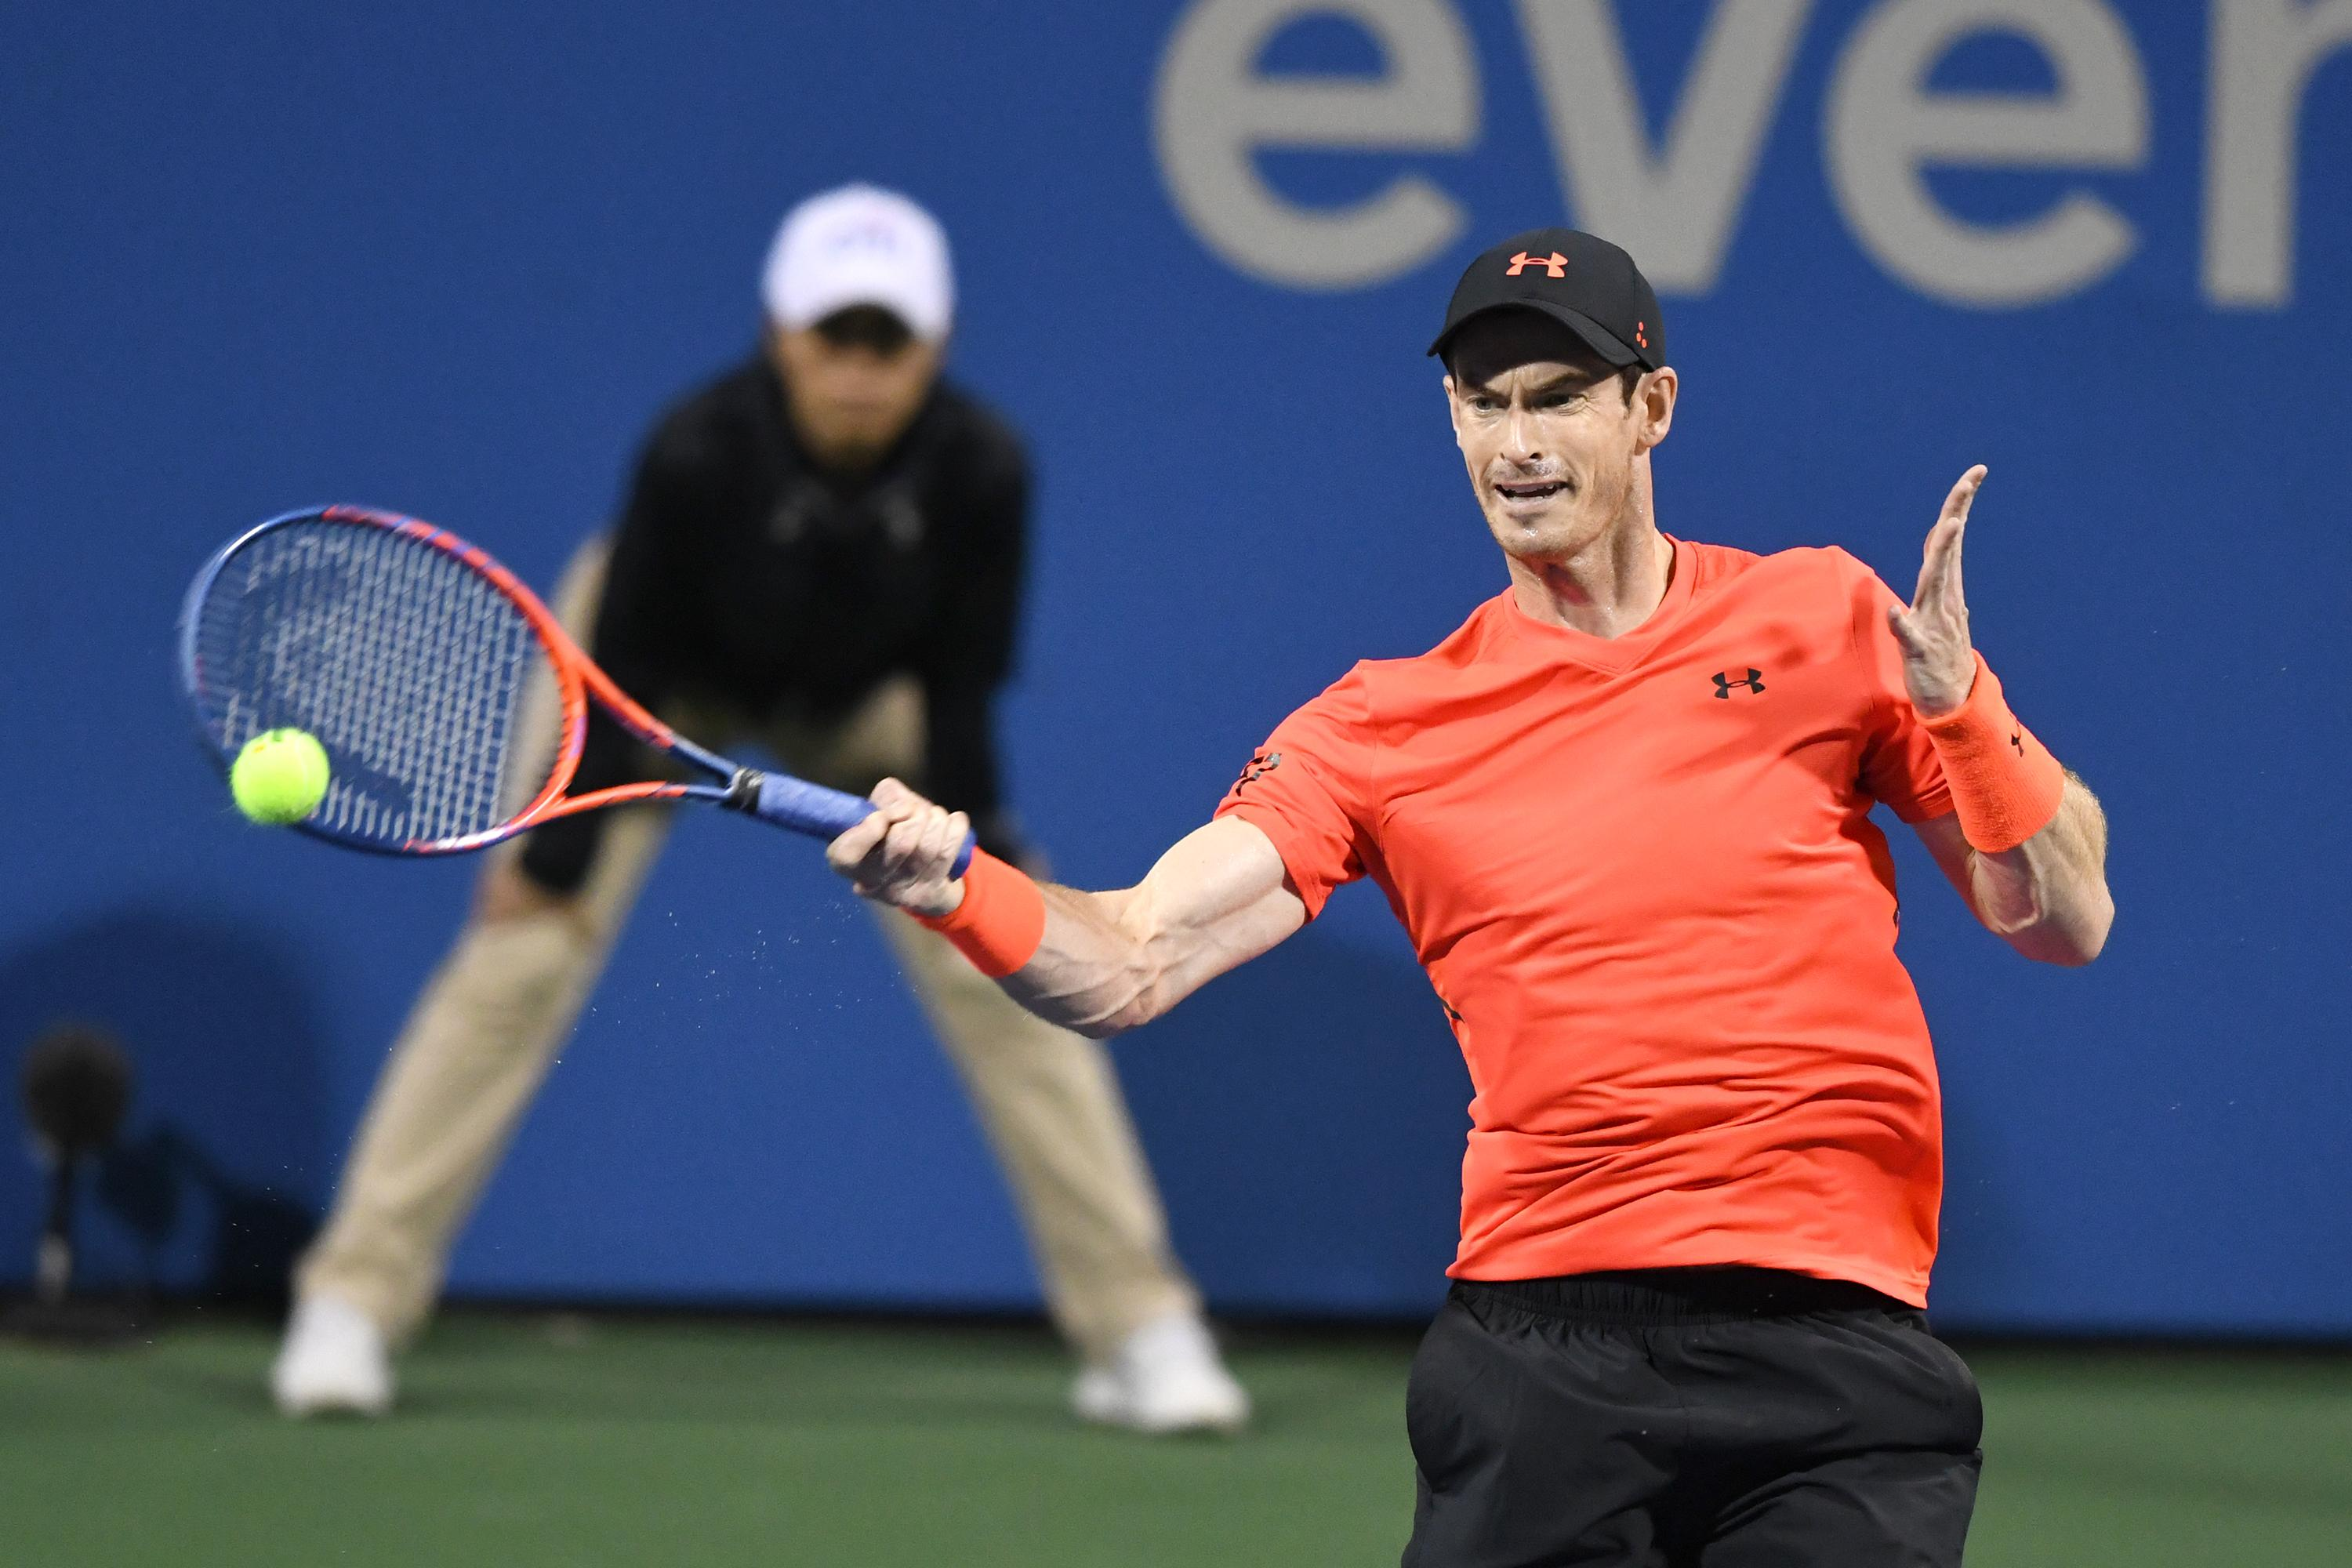 Murray battled back after losing the first set in Washington